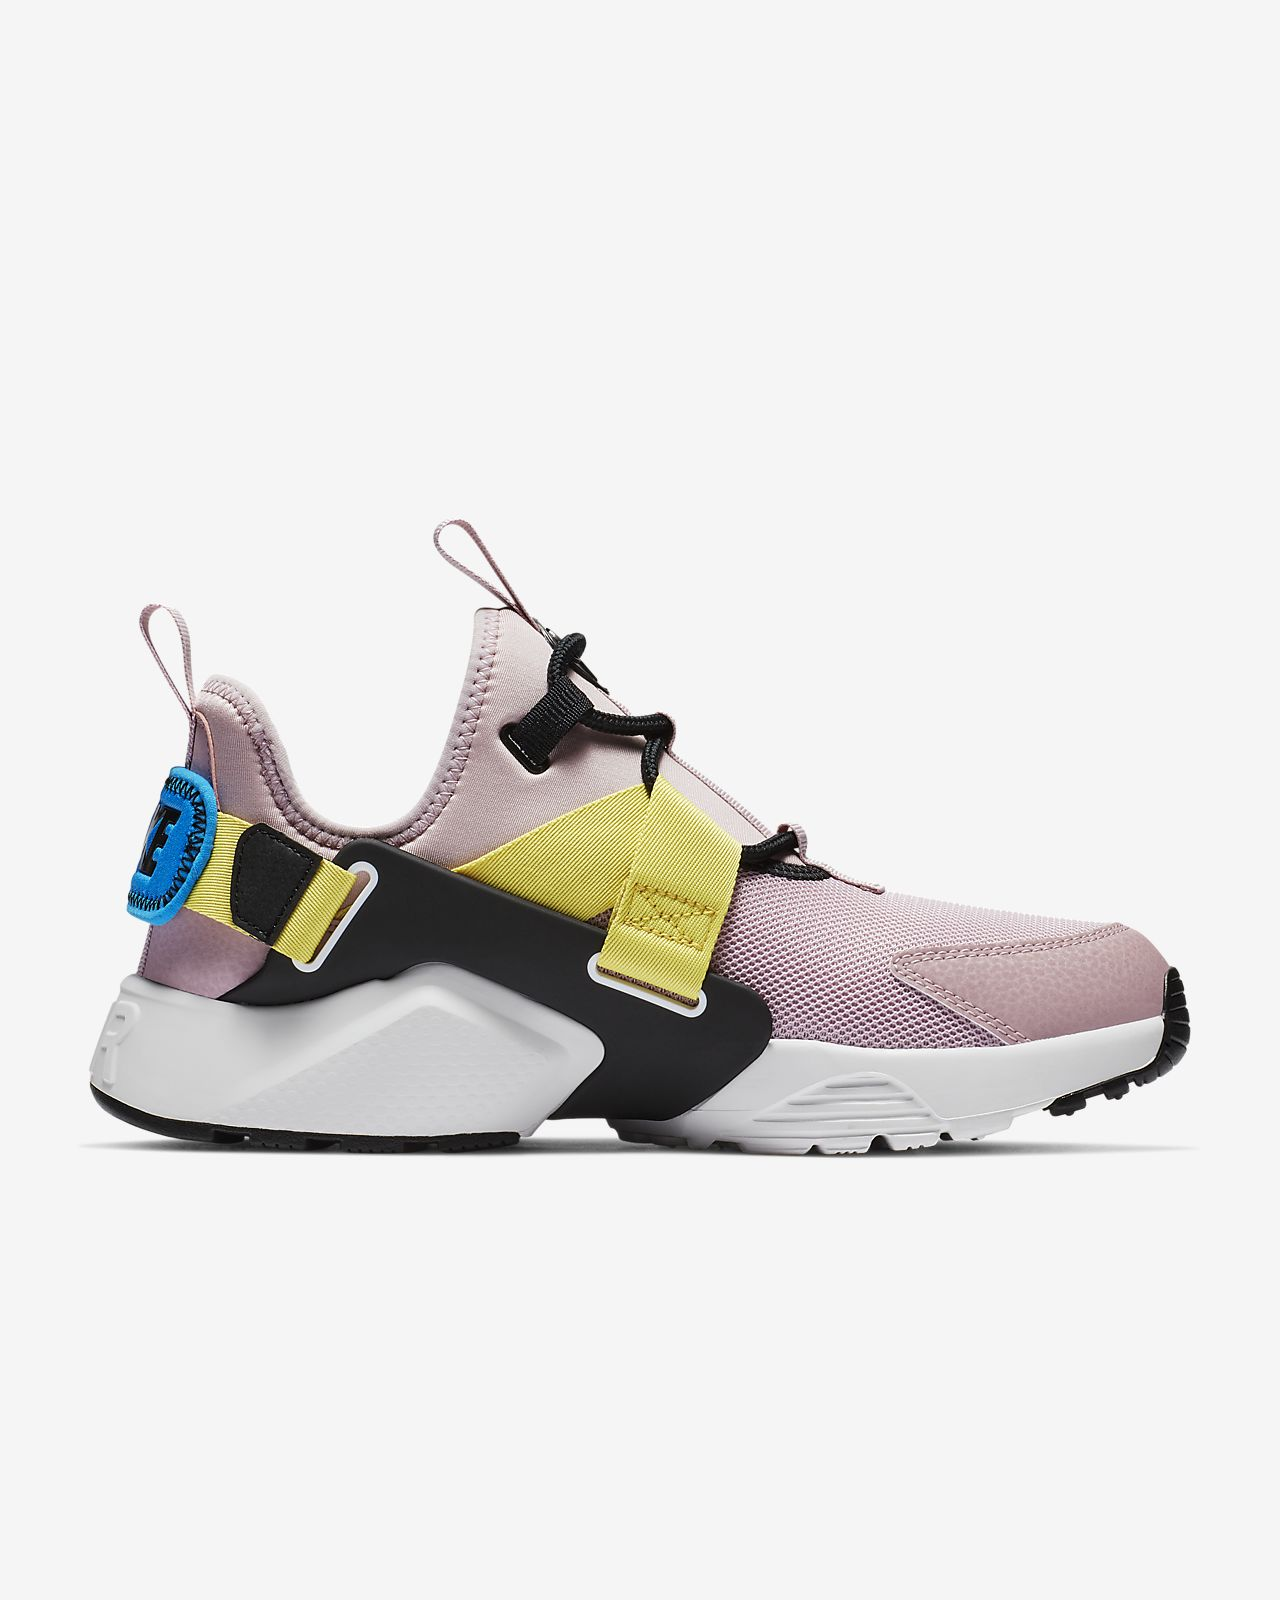 pretty nice 0d167 ca4a5 ... Nike Air Huarache City Low Women s Shoe